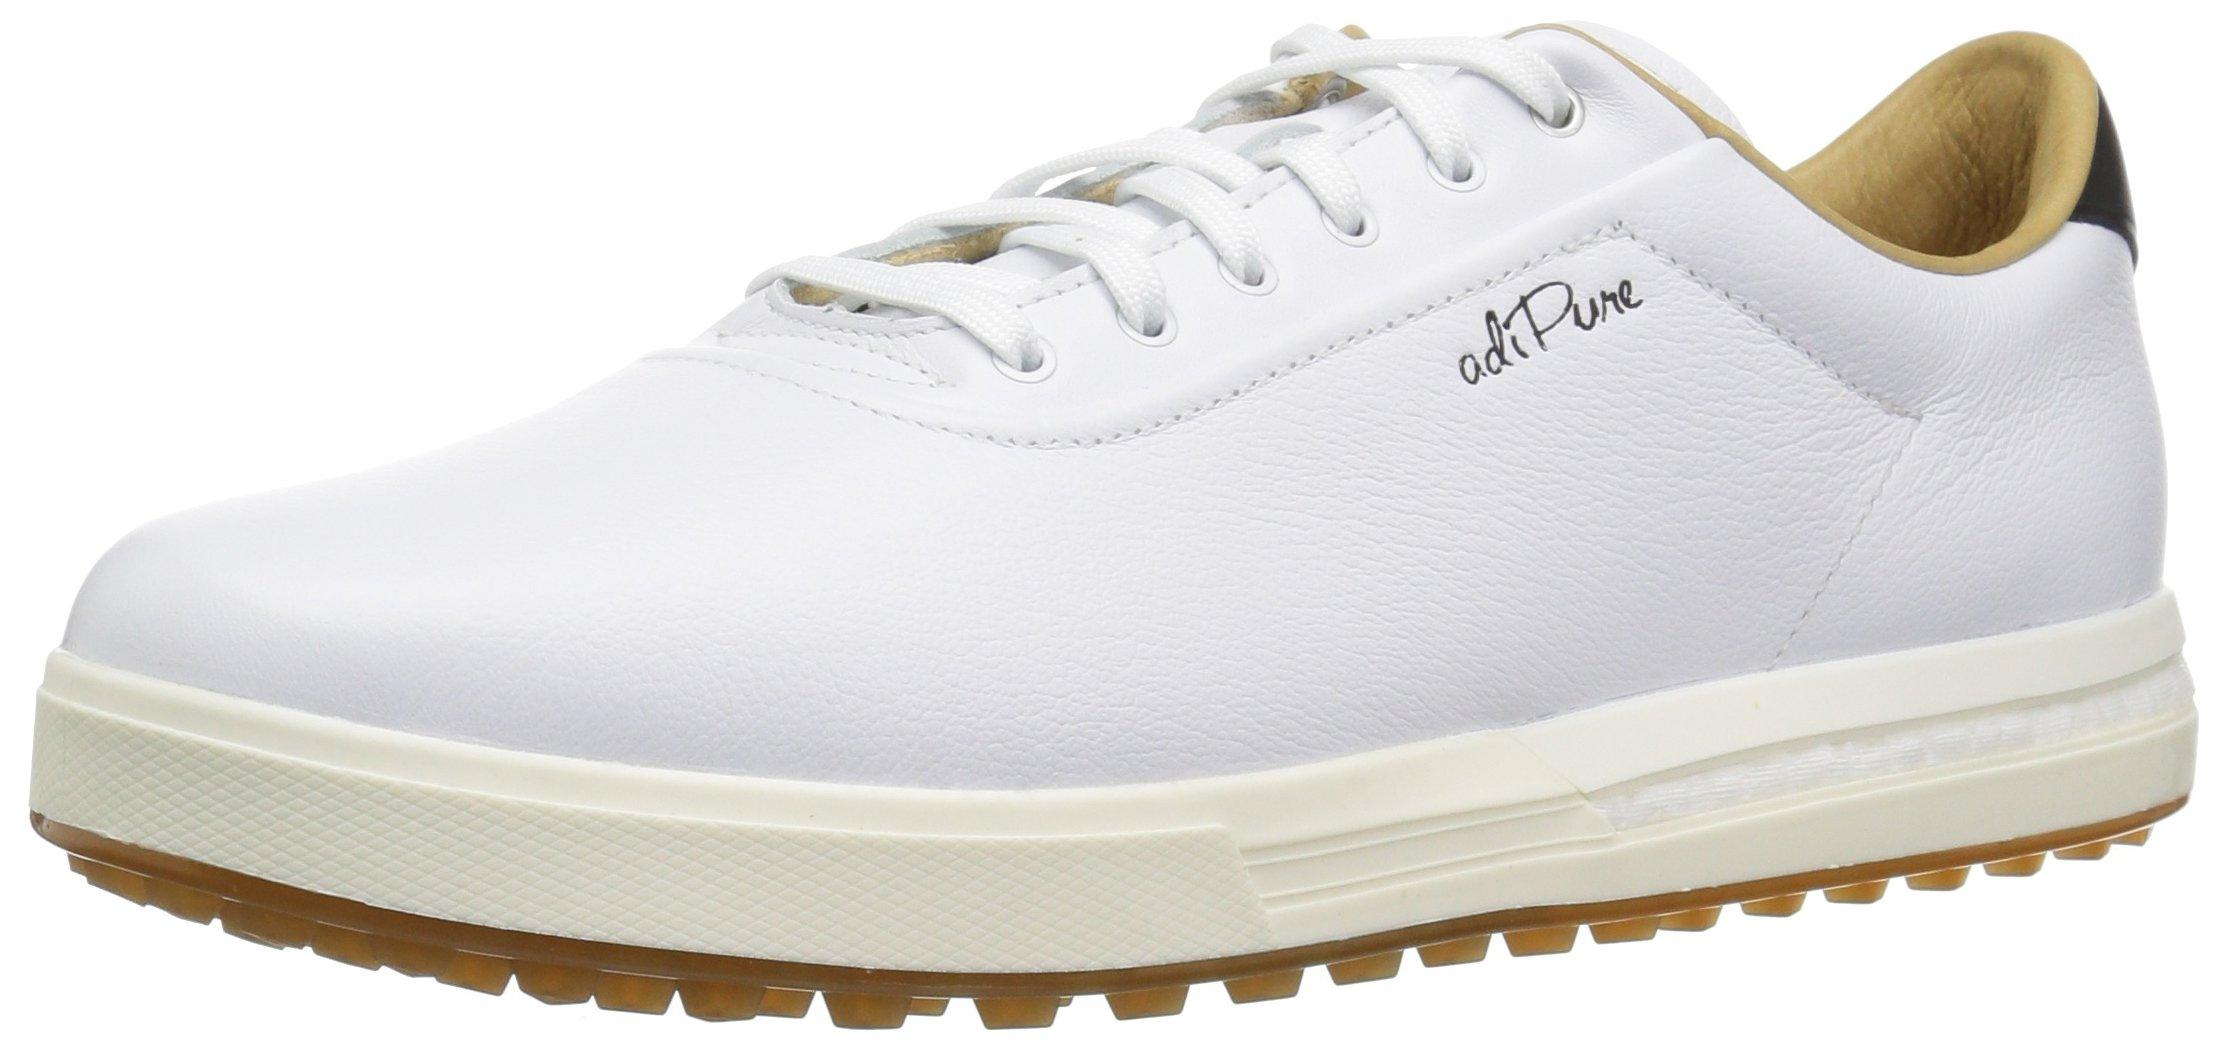 adipure sp golf shoes white